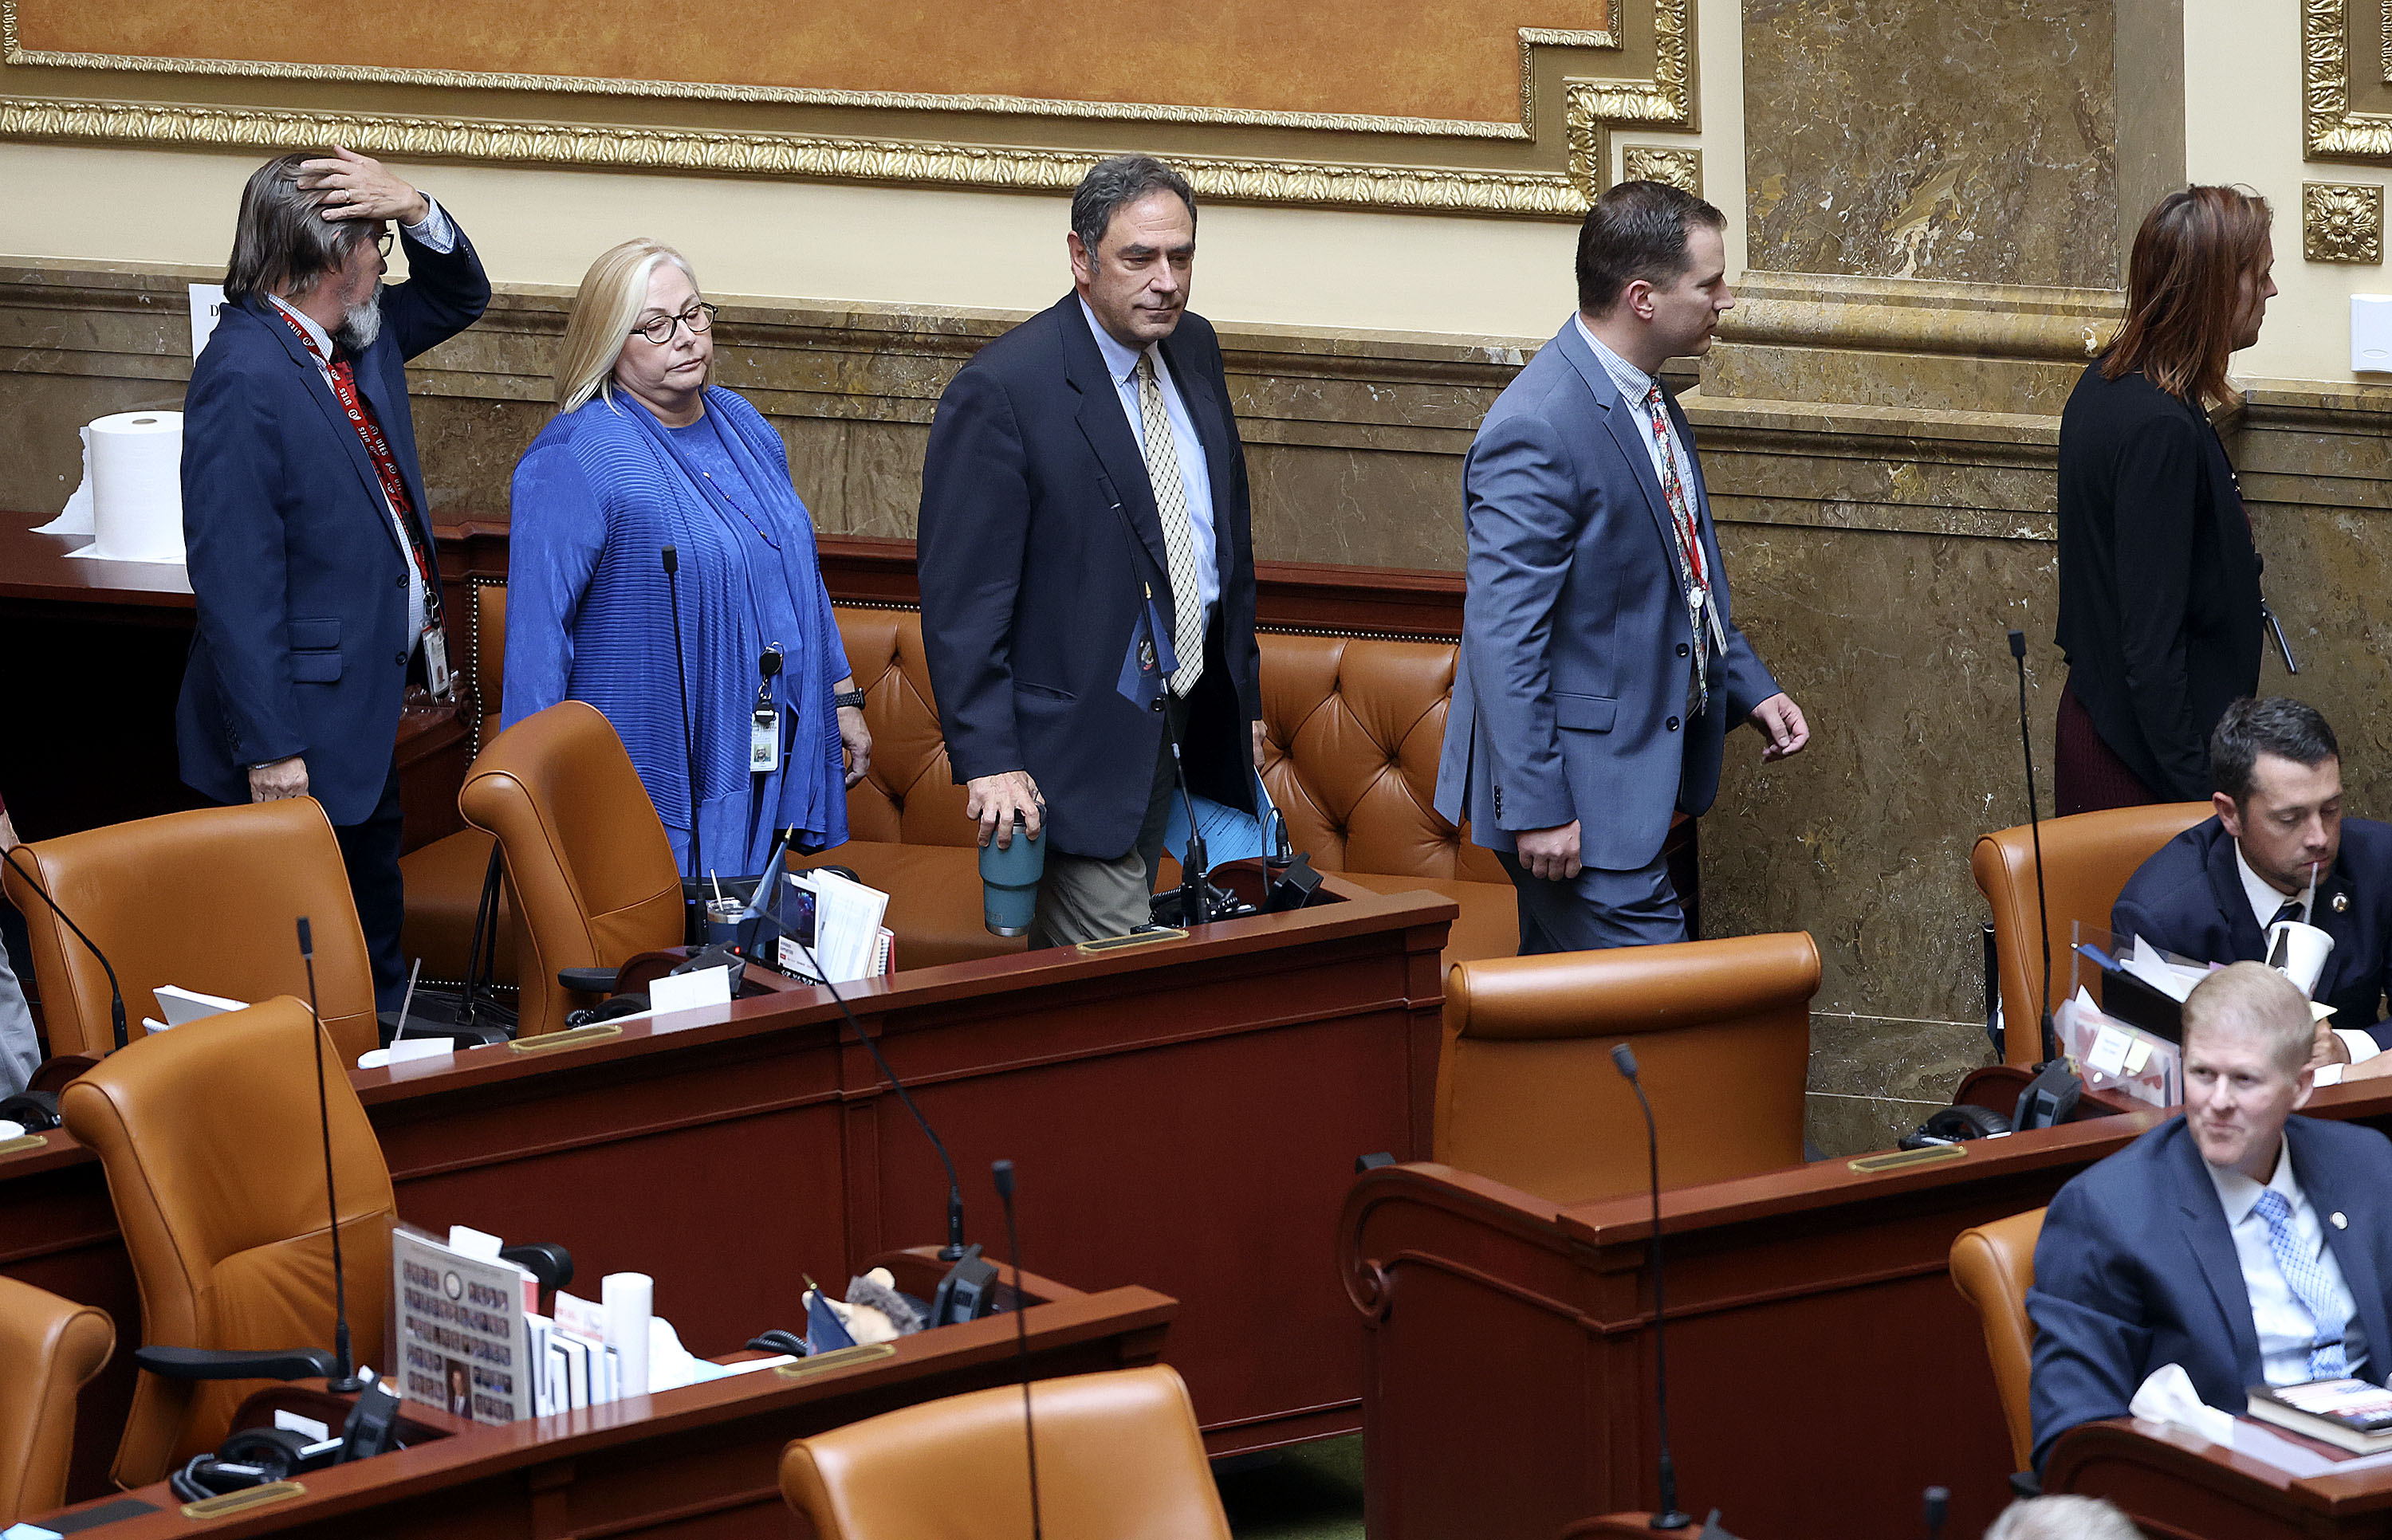 Democratic lawmakers walk out of an extraordinary session of the Legislature in protest of Republican lawmakers' plans to pass resolutions encouraging a ban of critical race theory concepts in Salt Lake City.